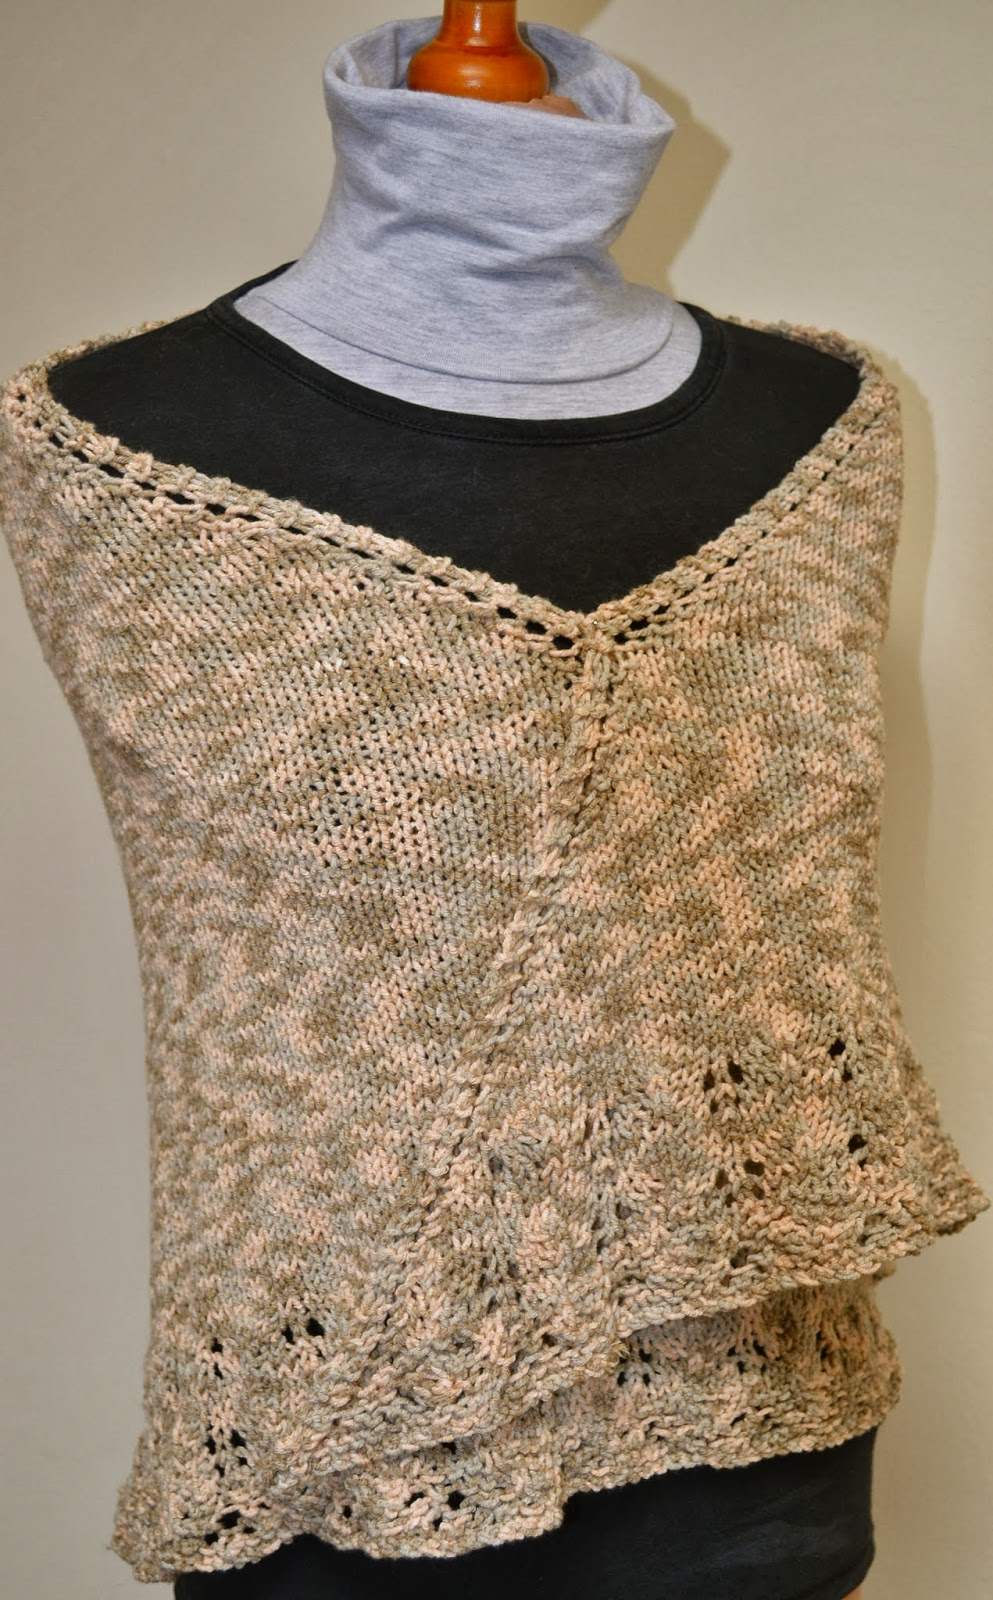 Knitting Patterns Using Patons Lace Yarn : Knitting Novice: The Last of the Vintage...or an ideal ...